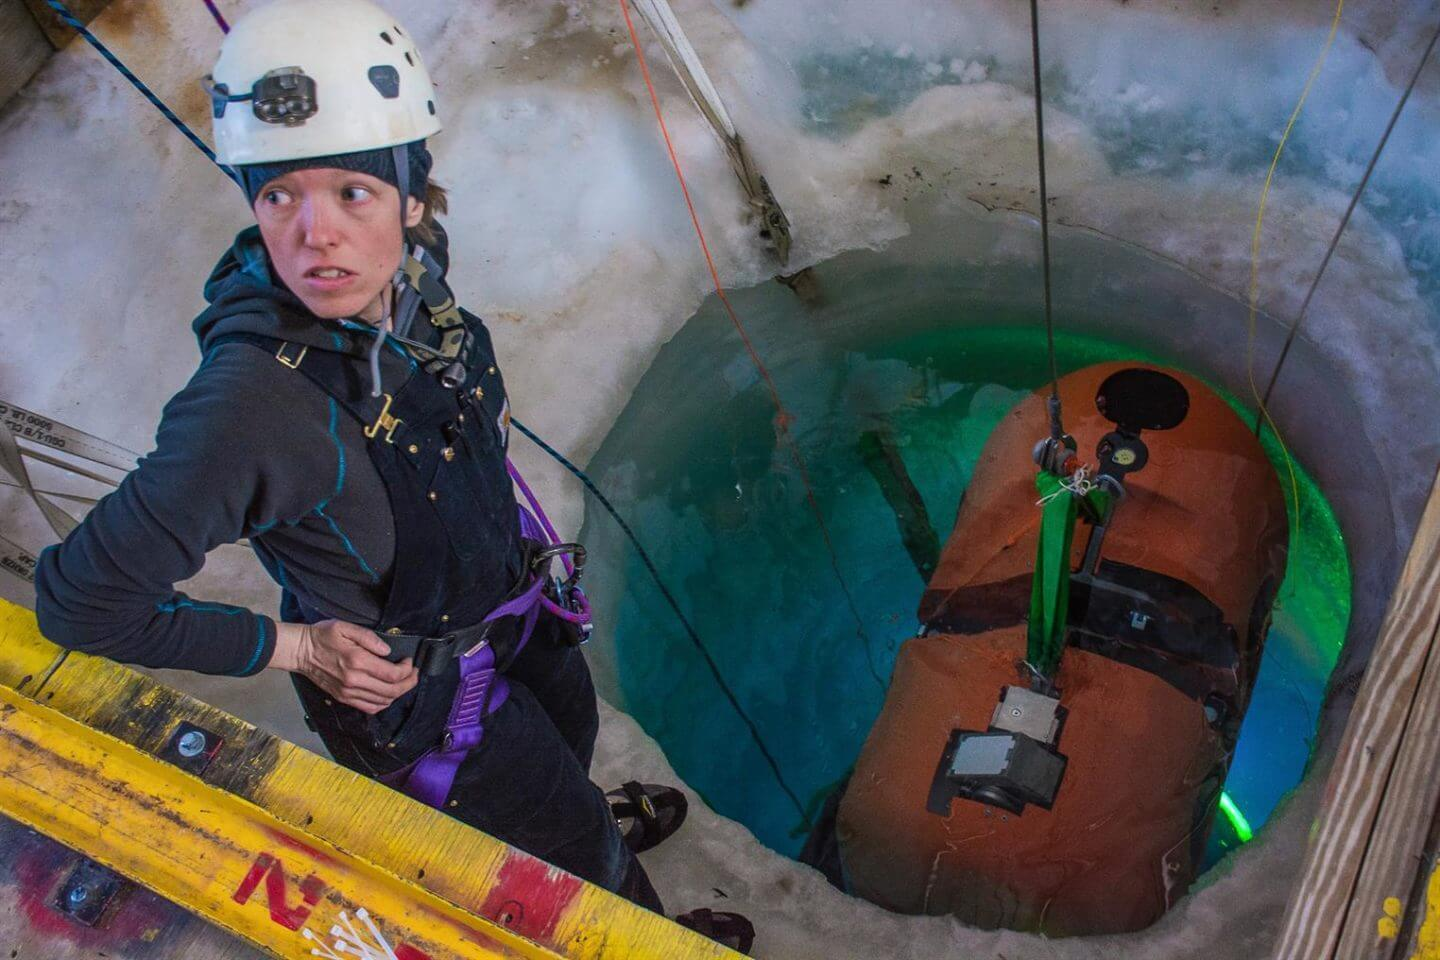 Vickie Siegel looks up from the hole drilled in the sea ice as the underwater autonomous vehicle ARTEMIS is lowered into the water below. The Sub-ice Investigation of Marine and Planetary-analog Ecosystems (SIMPLE) project is funded by NASA, and is the basis for the technology that will one day be used to investigate the icy ocean on Jupiter's moon Europa. The project's lead scientist is Britney Schmidt from the Georgia Institute of Technology. Photographed by: Mike Lucibella, ASC